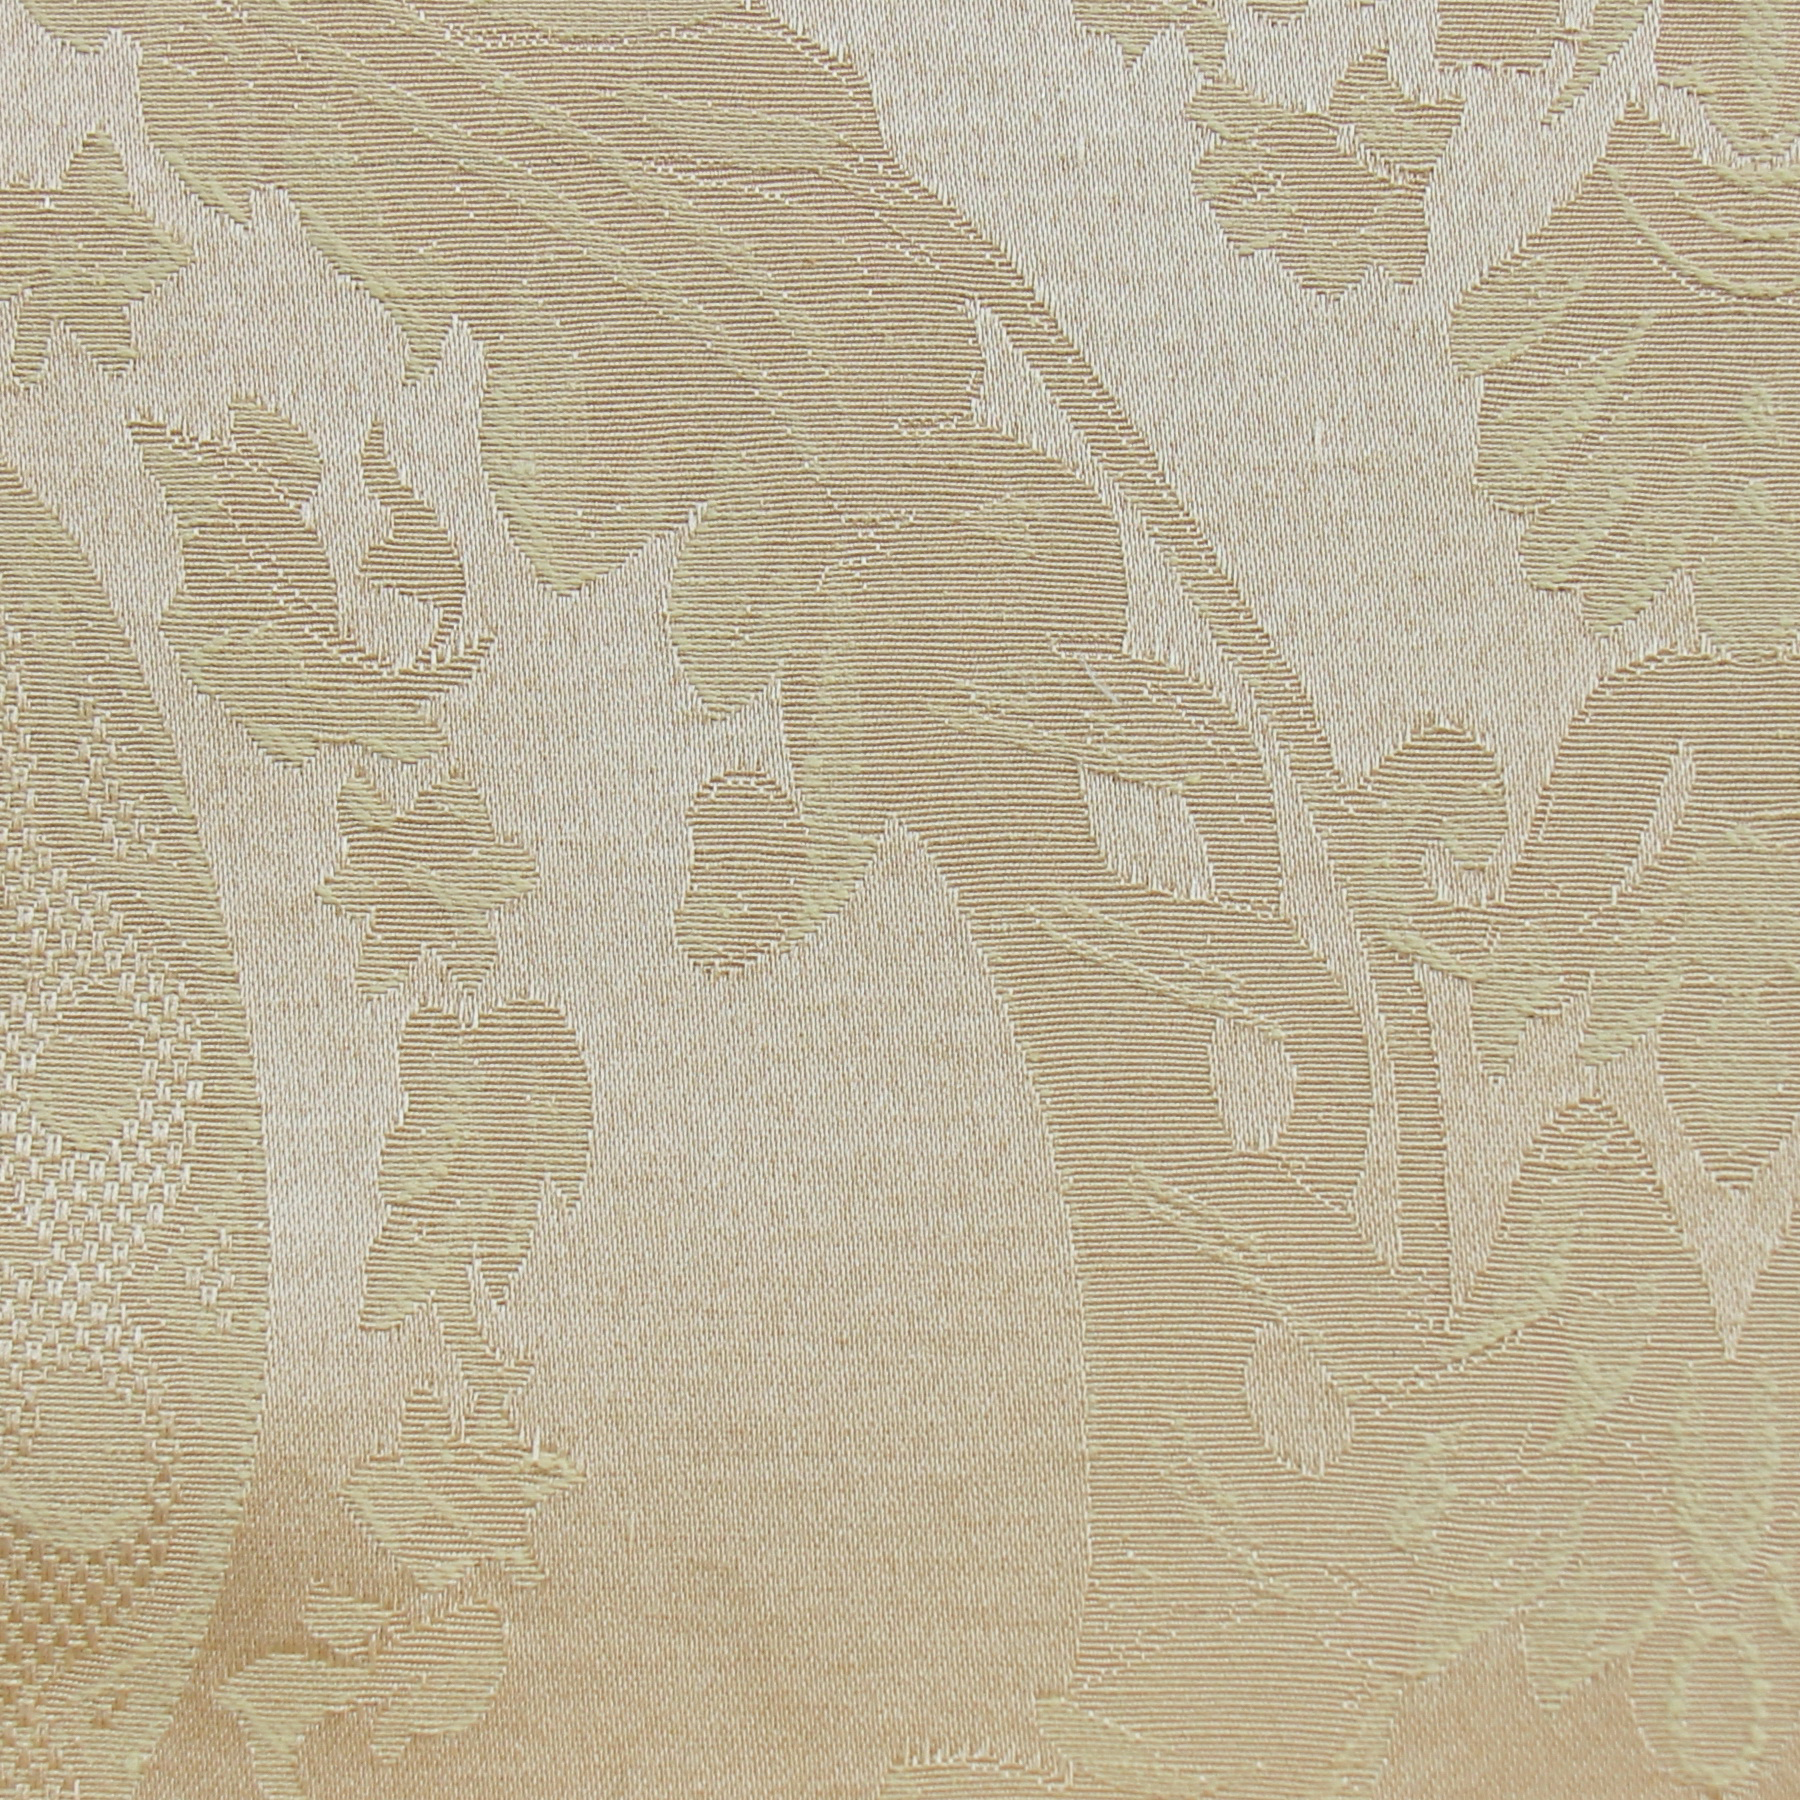 NO 39-45 RS X1 Plus NO 1 Fabric Upholstery Sample